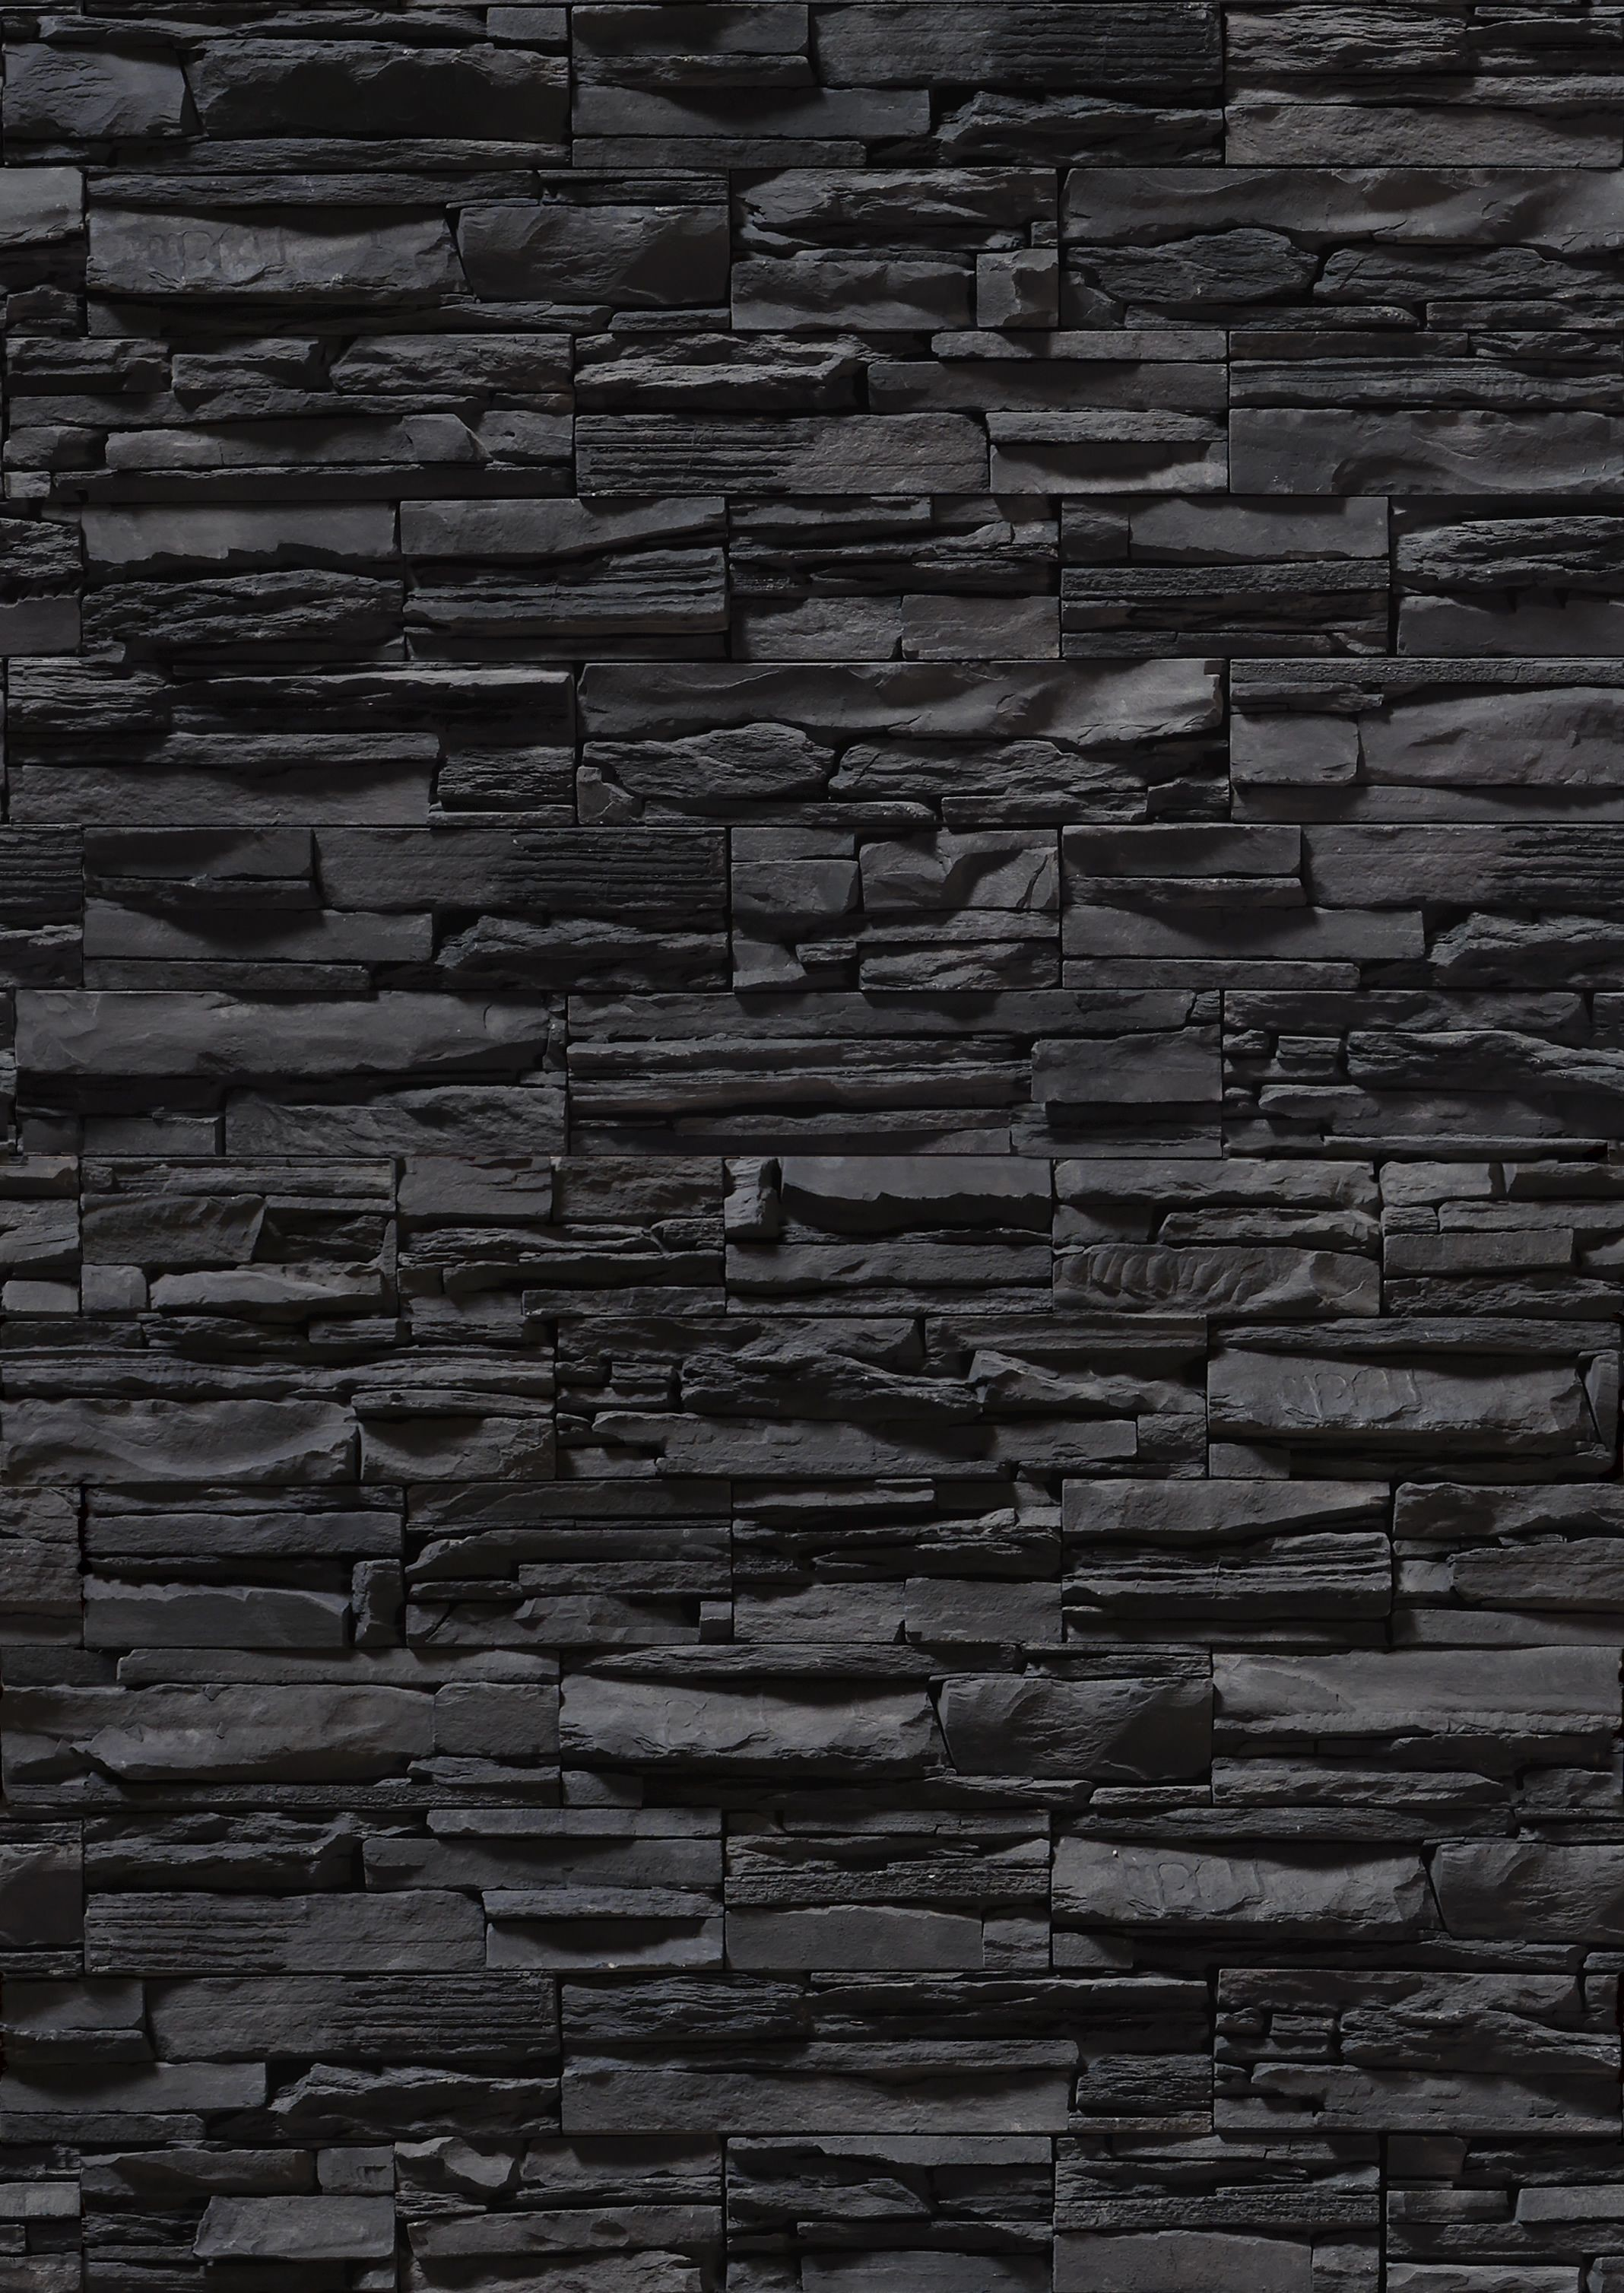 2136x3015 Black stone, wall, texture stone, stone wall, download background, black  stone background. Repinned by Lapicida.com.